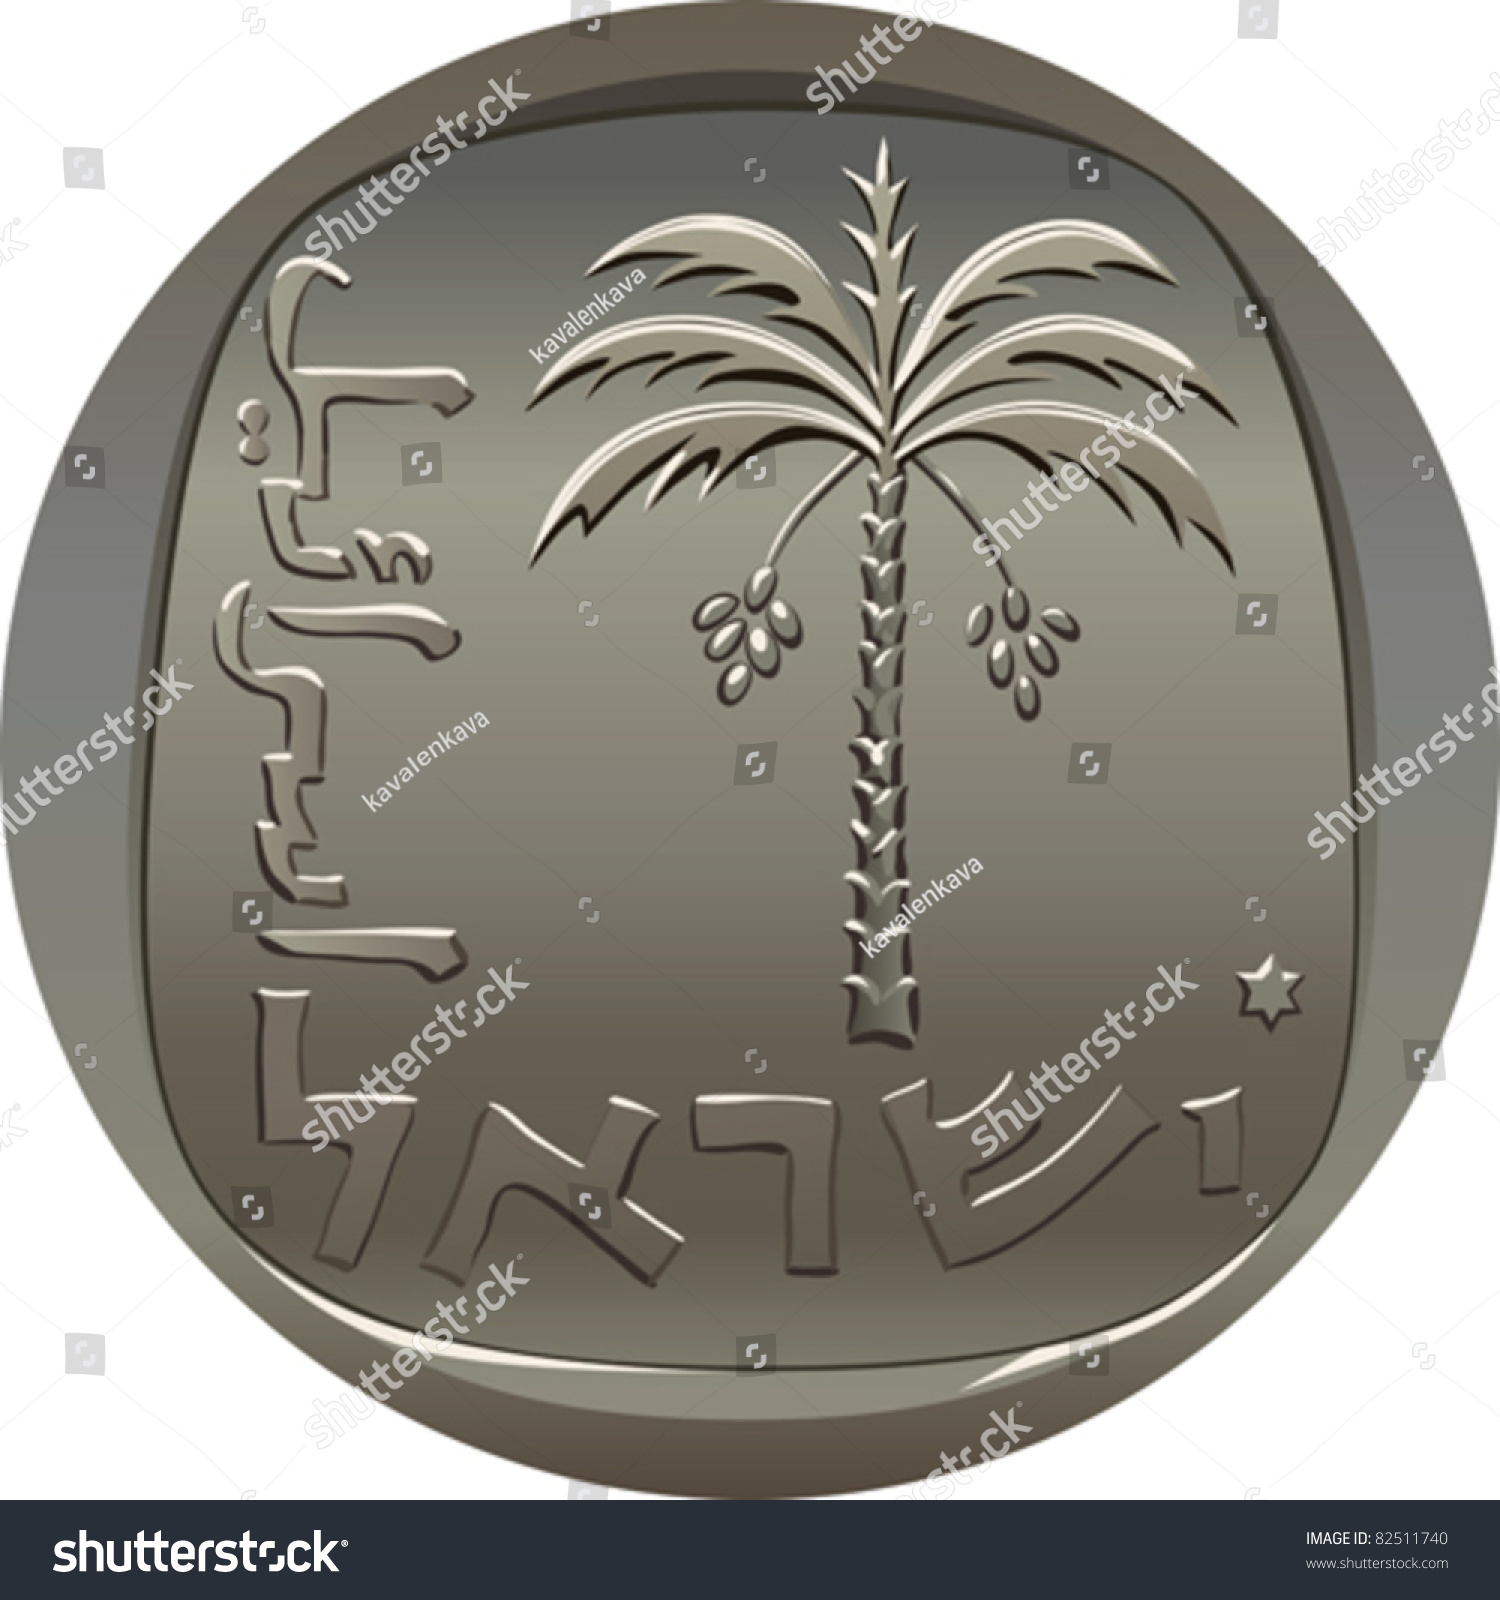 Vector Israeli Coin 10 Ten Agora With The Image Of The Date Palm 82511740 Shutterstock